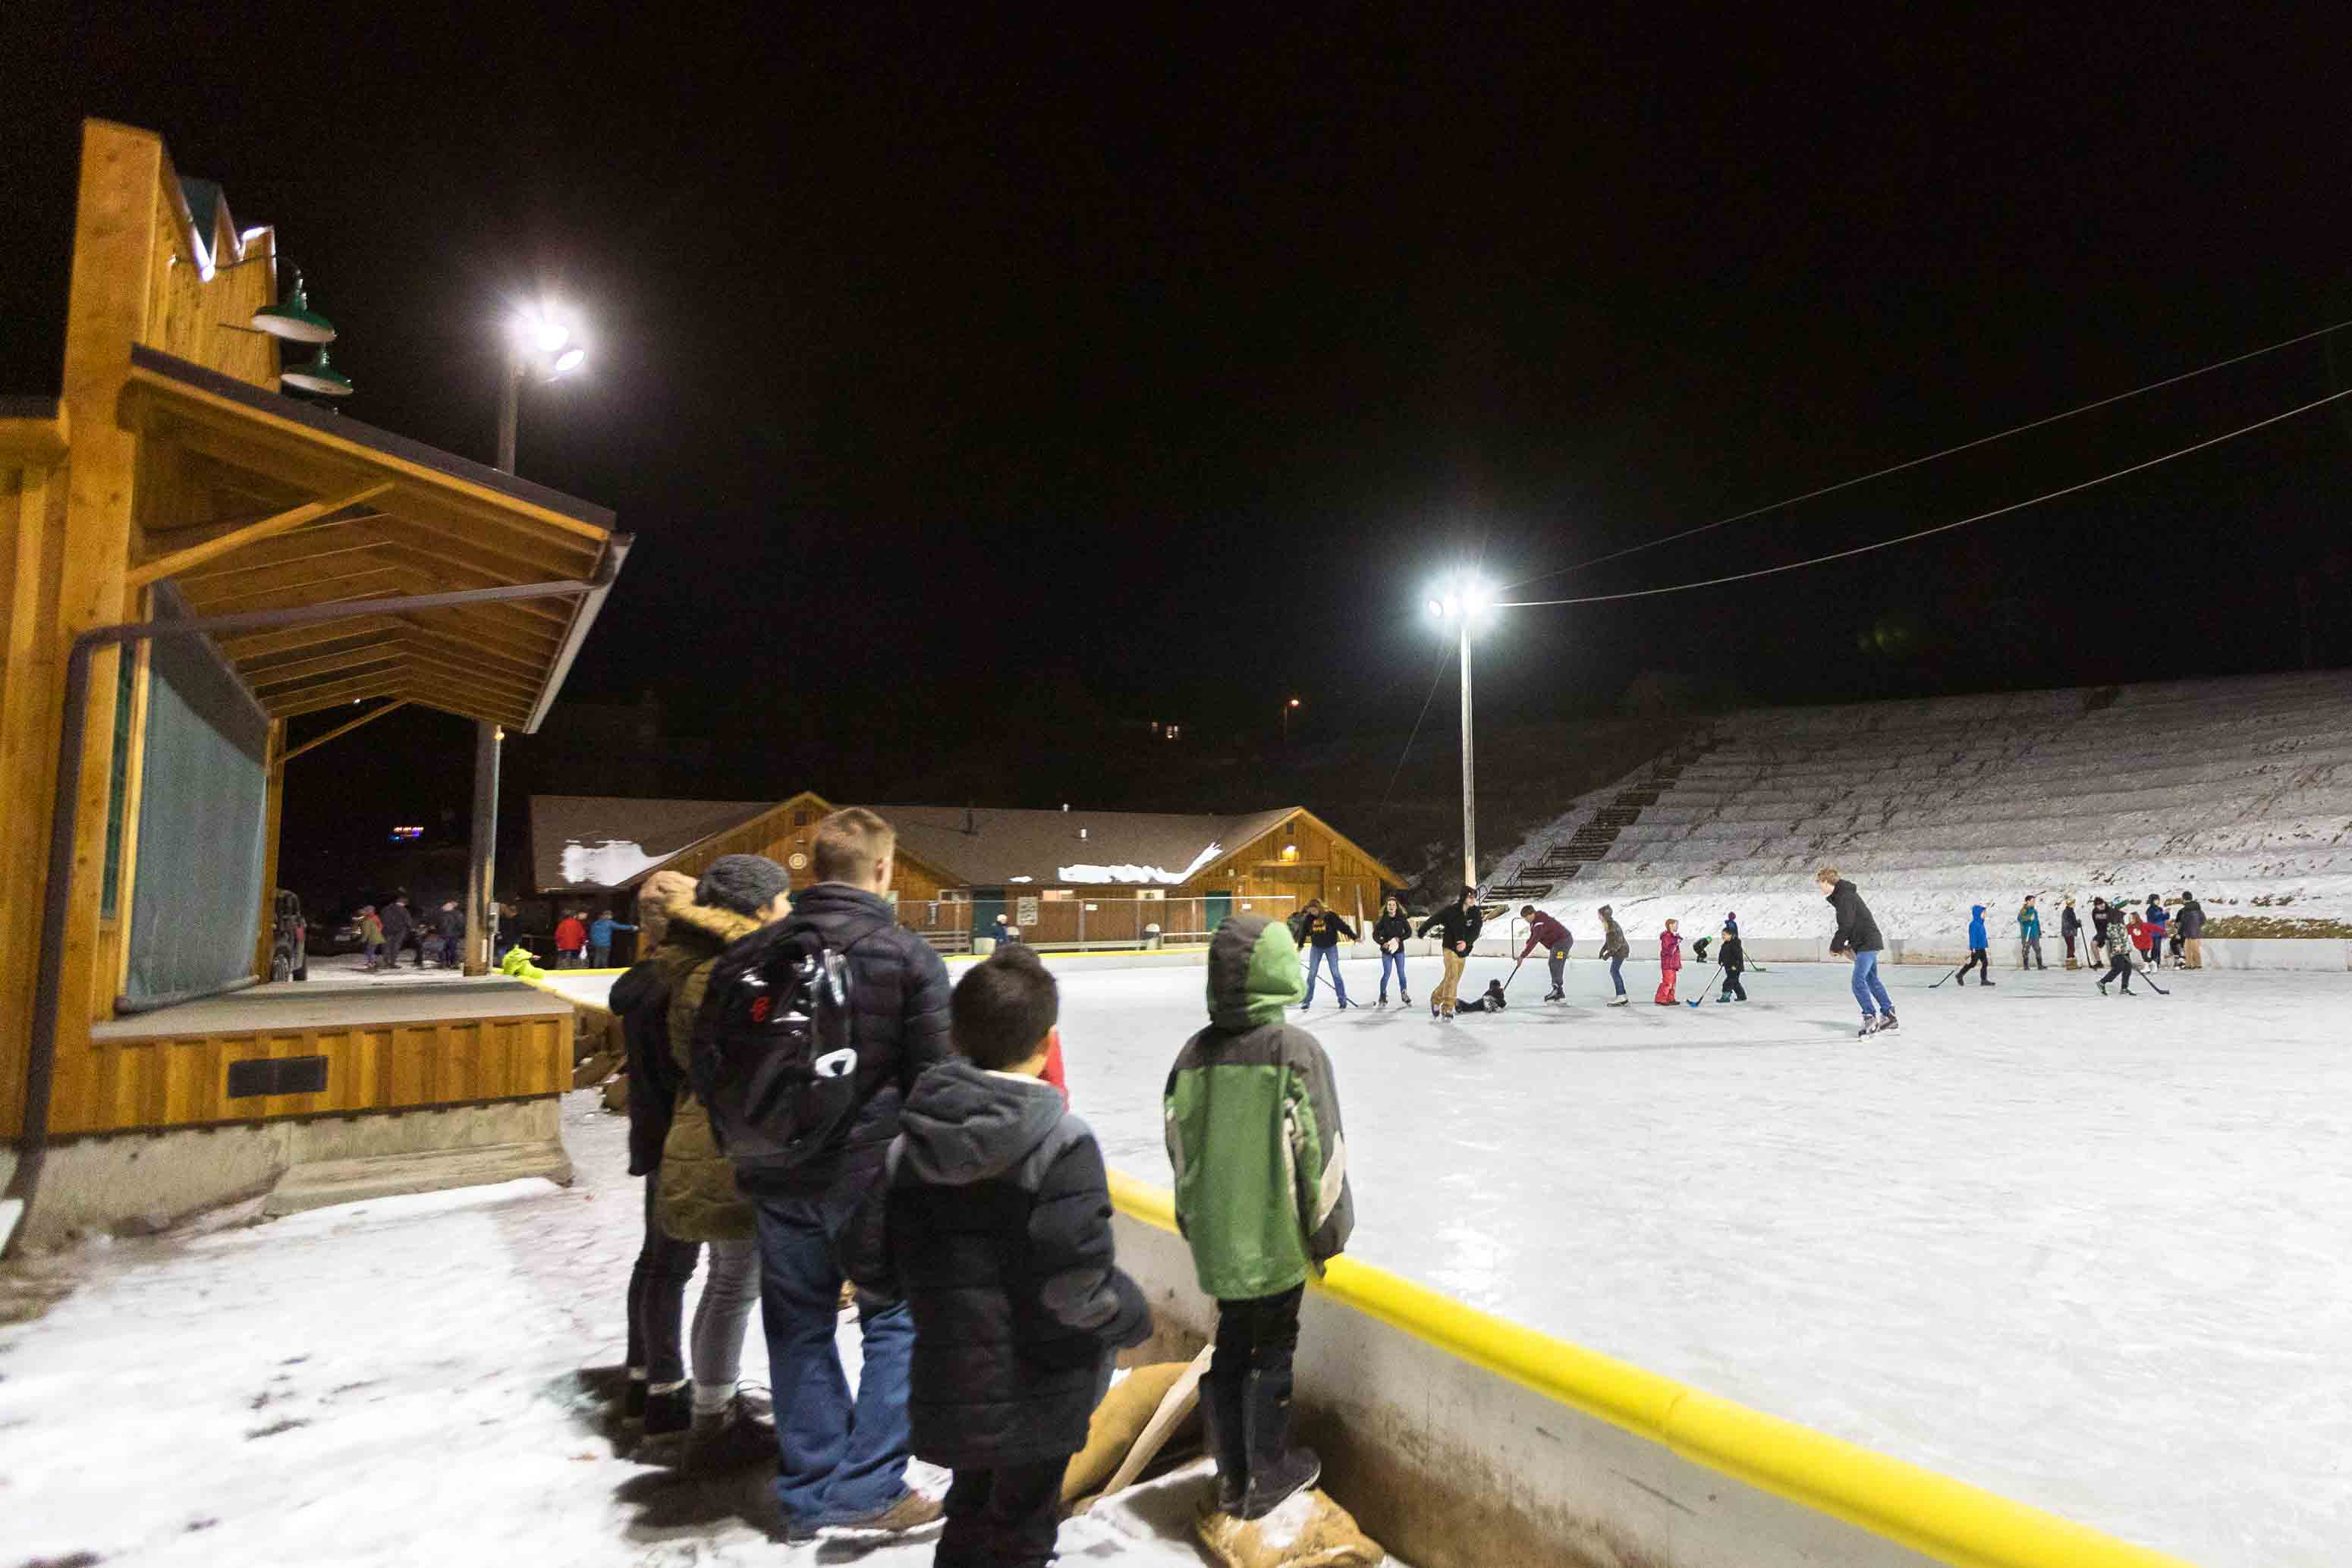 The ice rink at Winninghoff Park in Philipsburg, Montana.